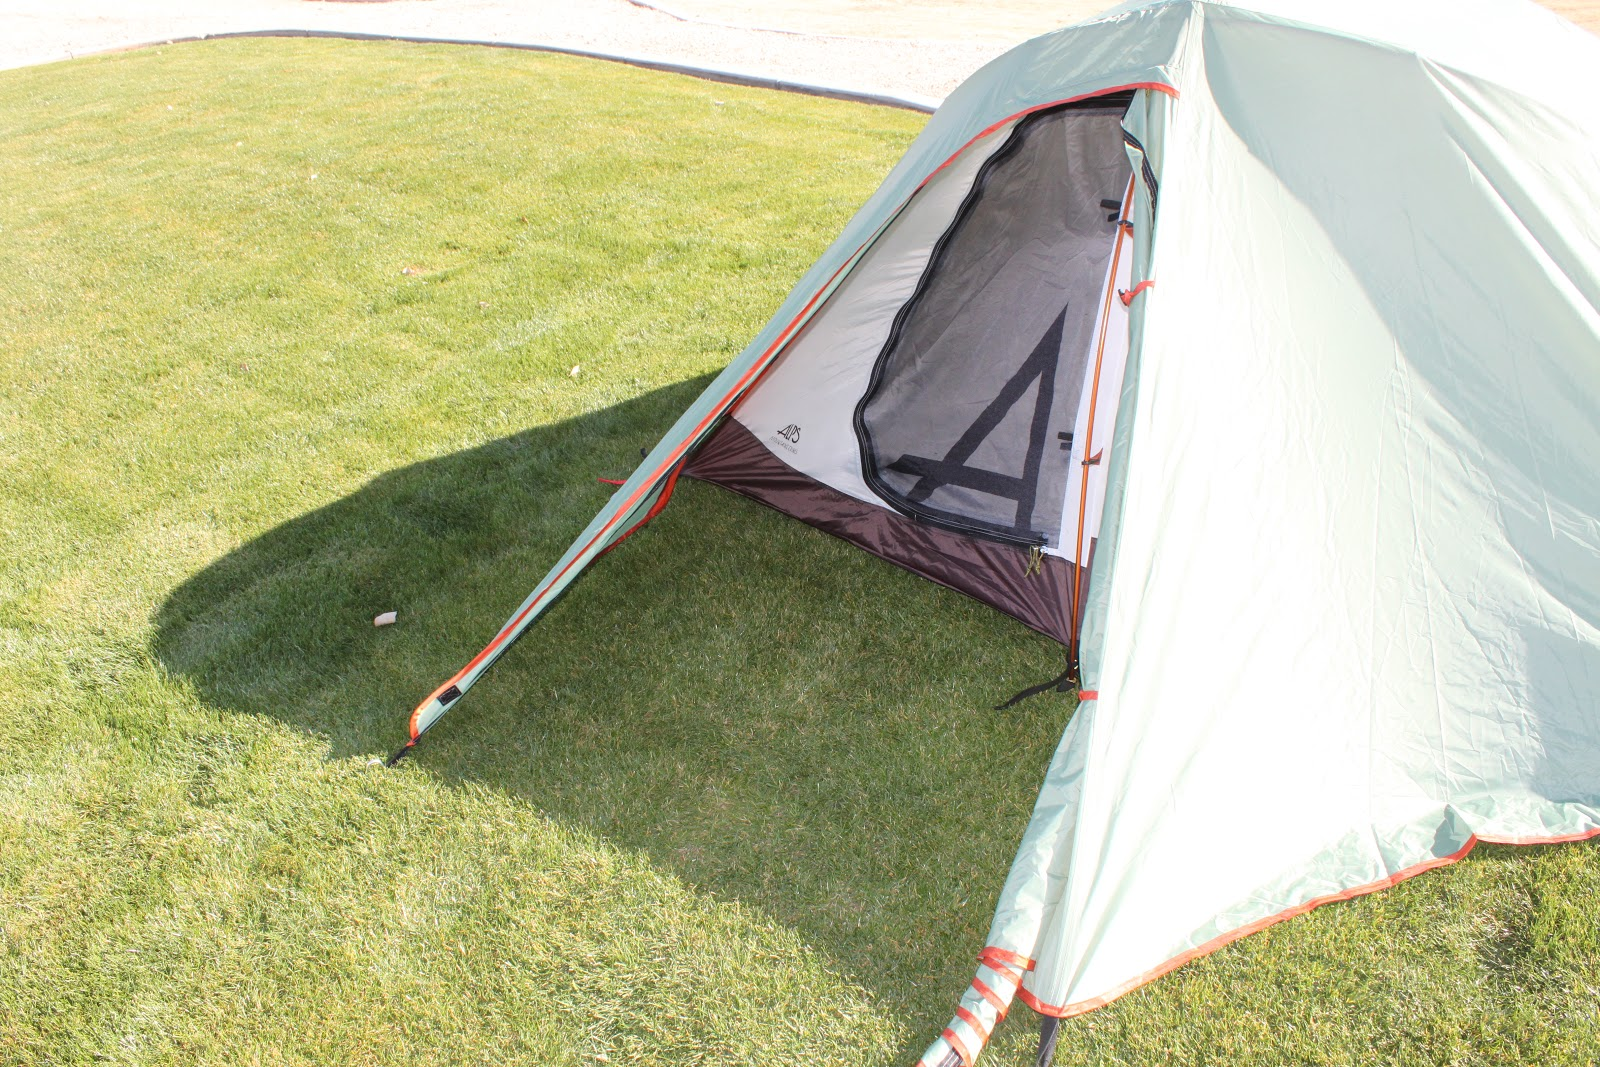 Alps Mountaineering Extreme 2 Backpacking Tent Review & Stereowise Plus: Alps Mountaineering Extreme 2 Backpacking Tent Review